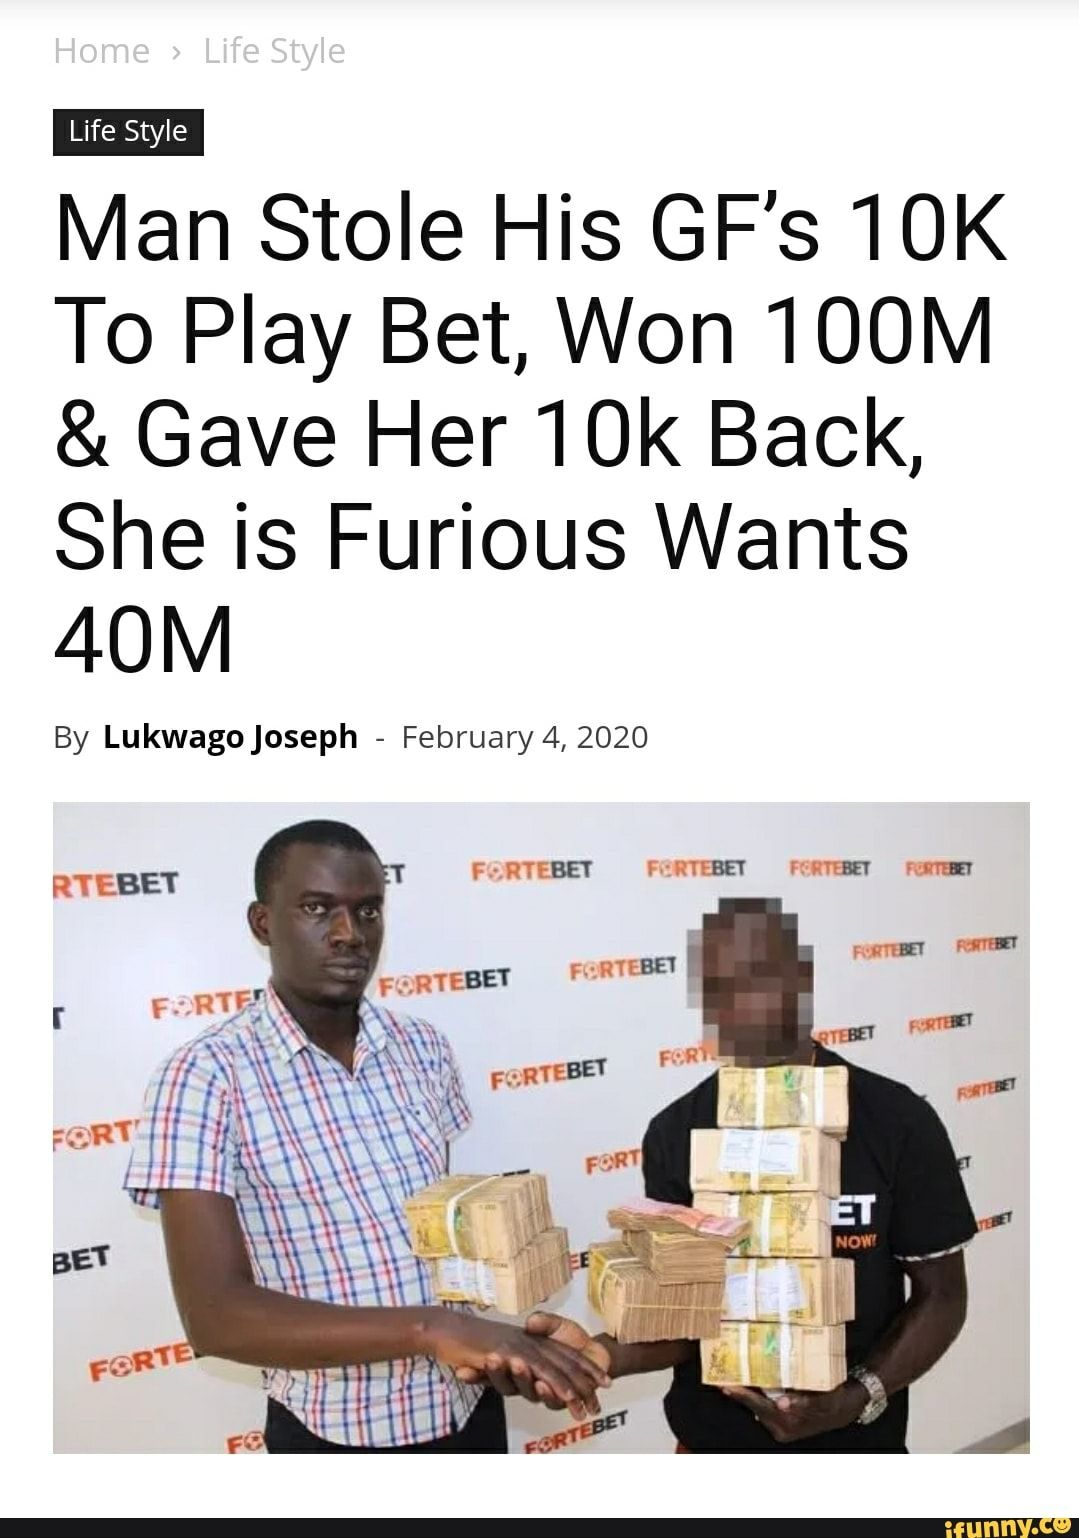 Man Stole His Gf S 10k To Play Bet Won 100m Gave Her 10k Back She Is Furious Wants By Lukwago Joseph February 4 2020 Ifunny Stupid Funny Memes Funny Relatable Memes Really Funny